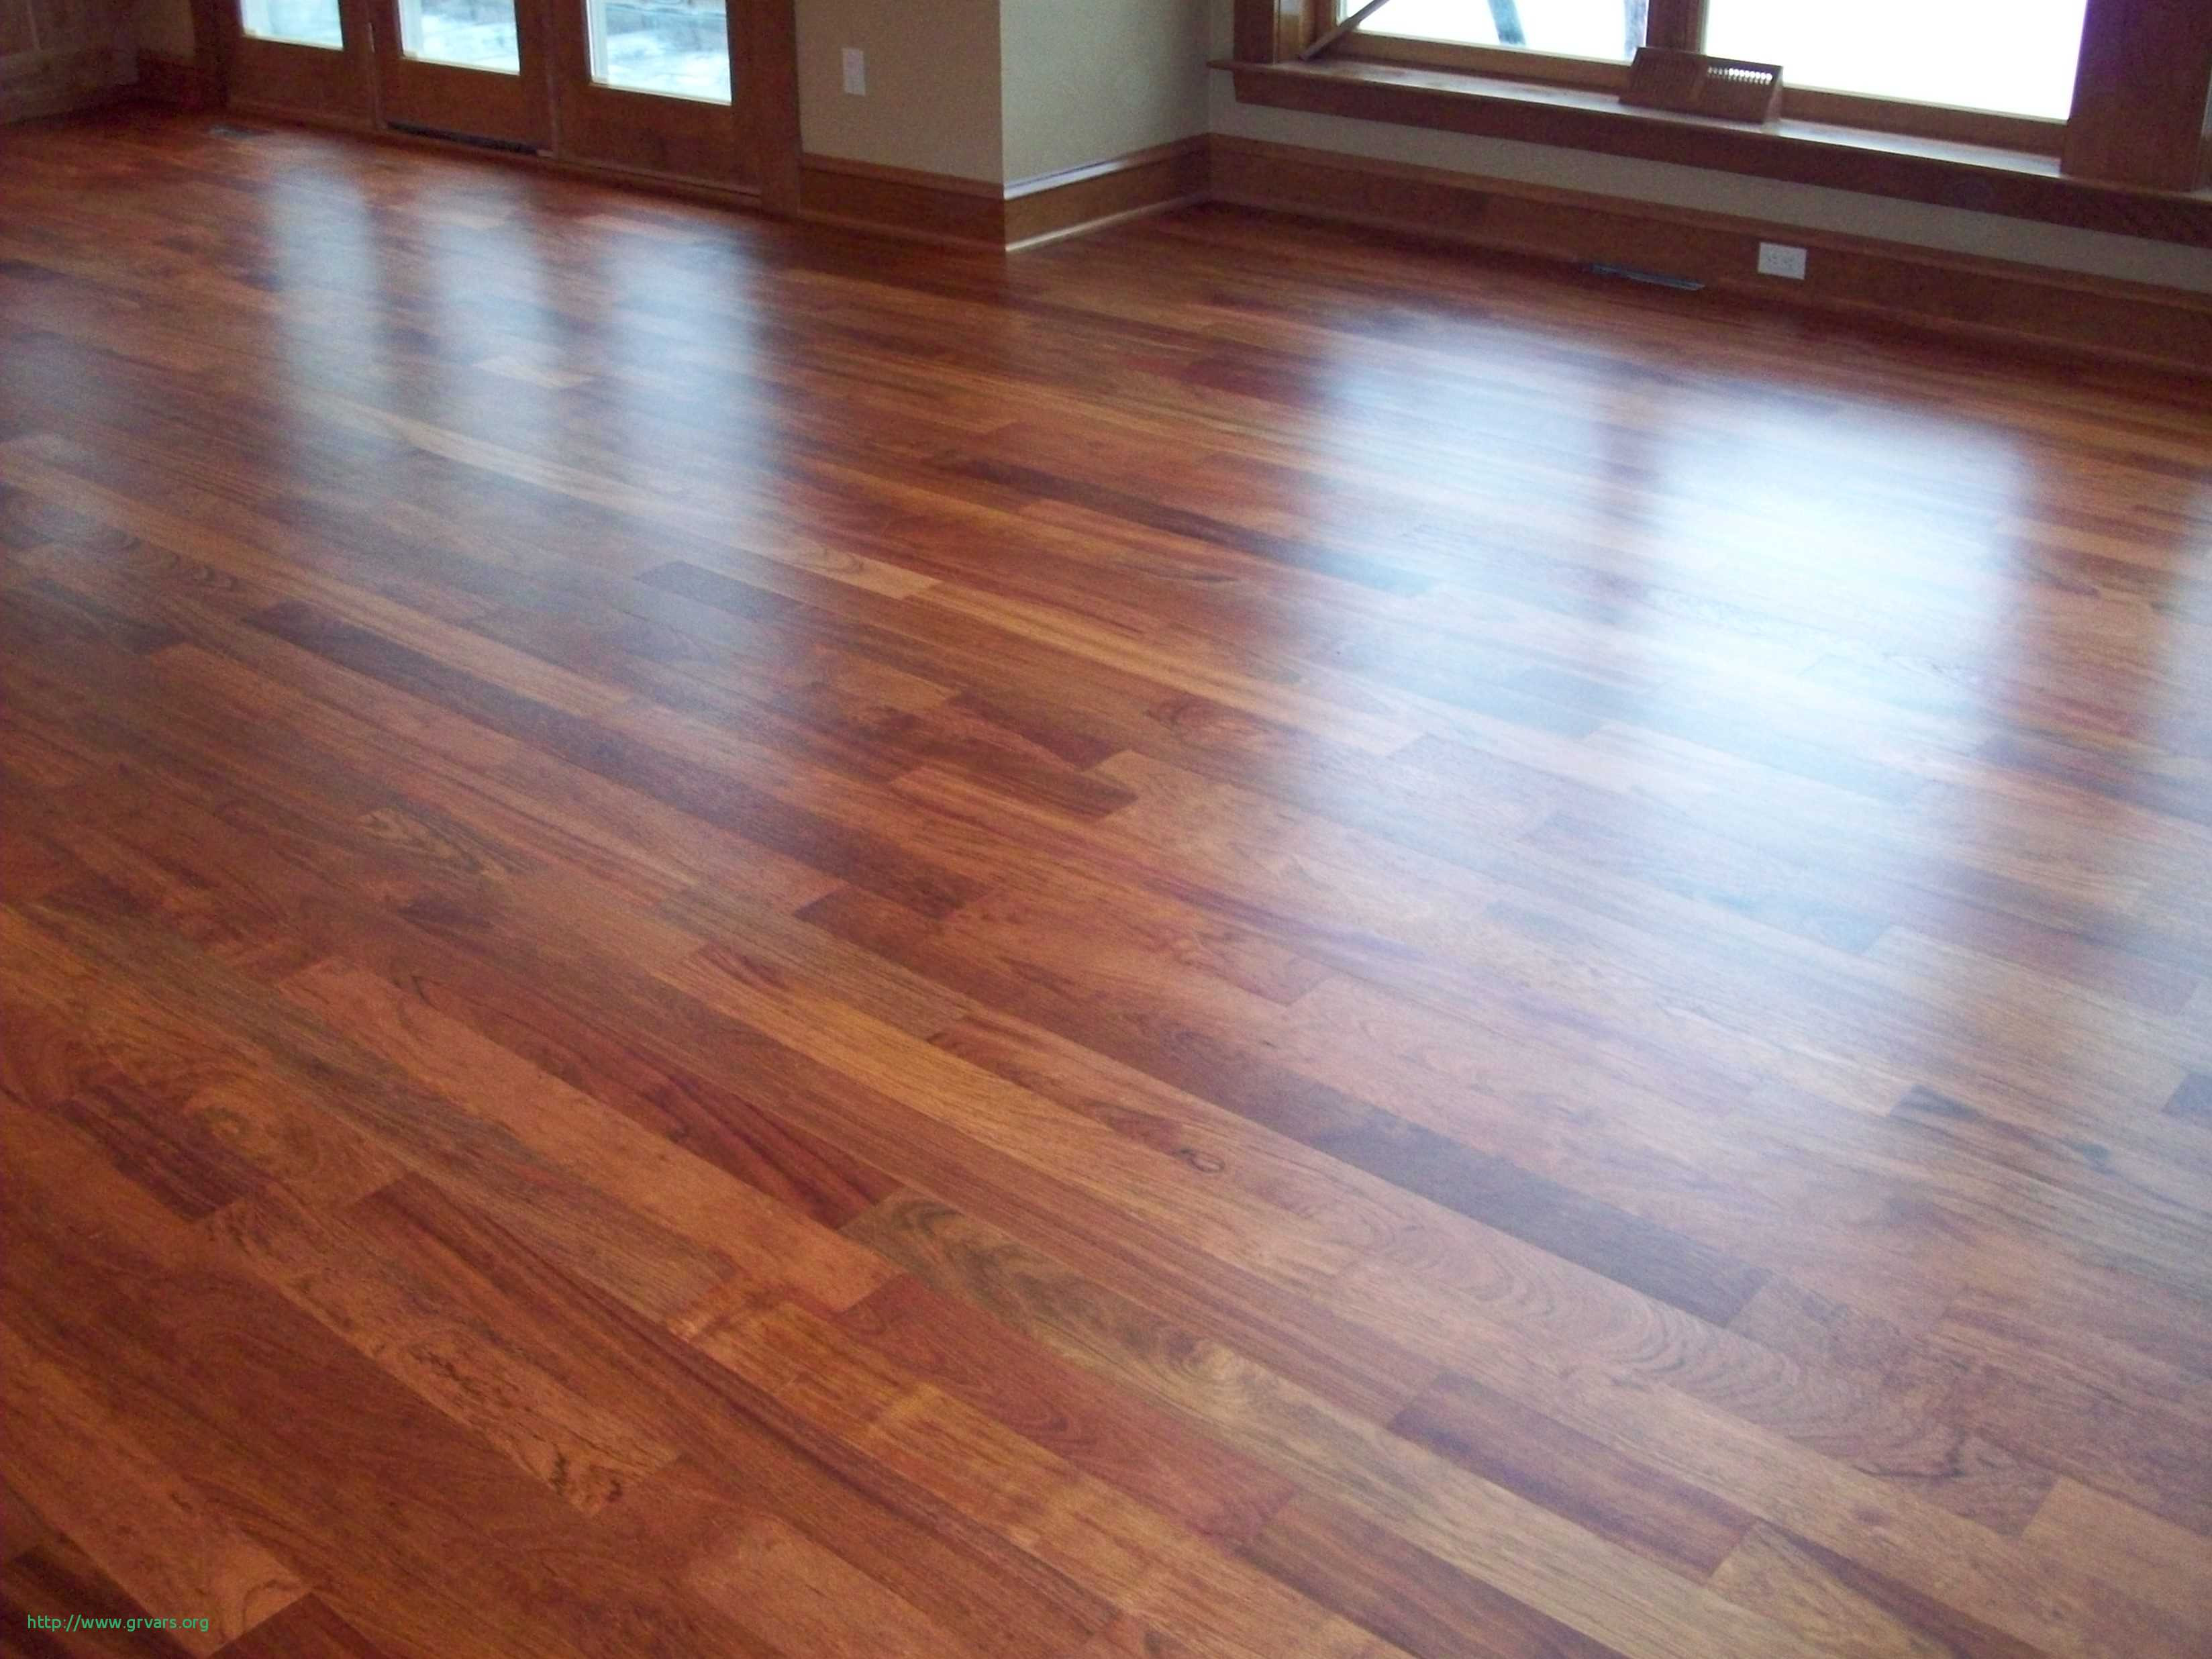 hardwood floor repair fort worth tx of 21 inspirant best prices for laminate wood flooring ideas blog pertaining to best prices for laminate wood flooring impressionnant engaging discount hardwood flooring 5 where to buy inspirational